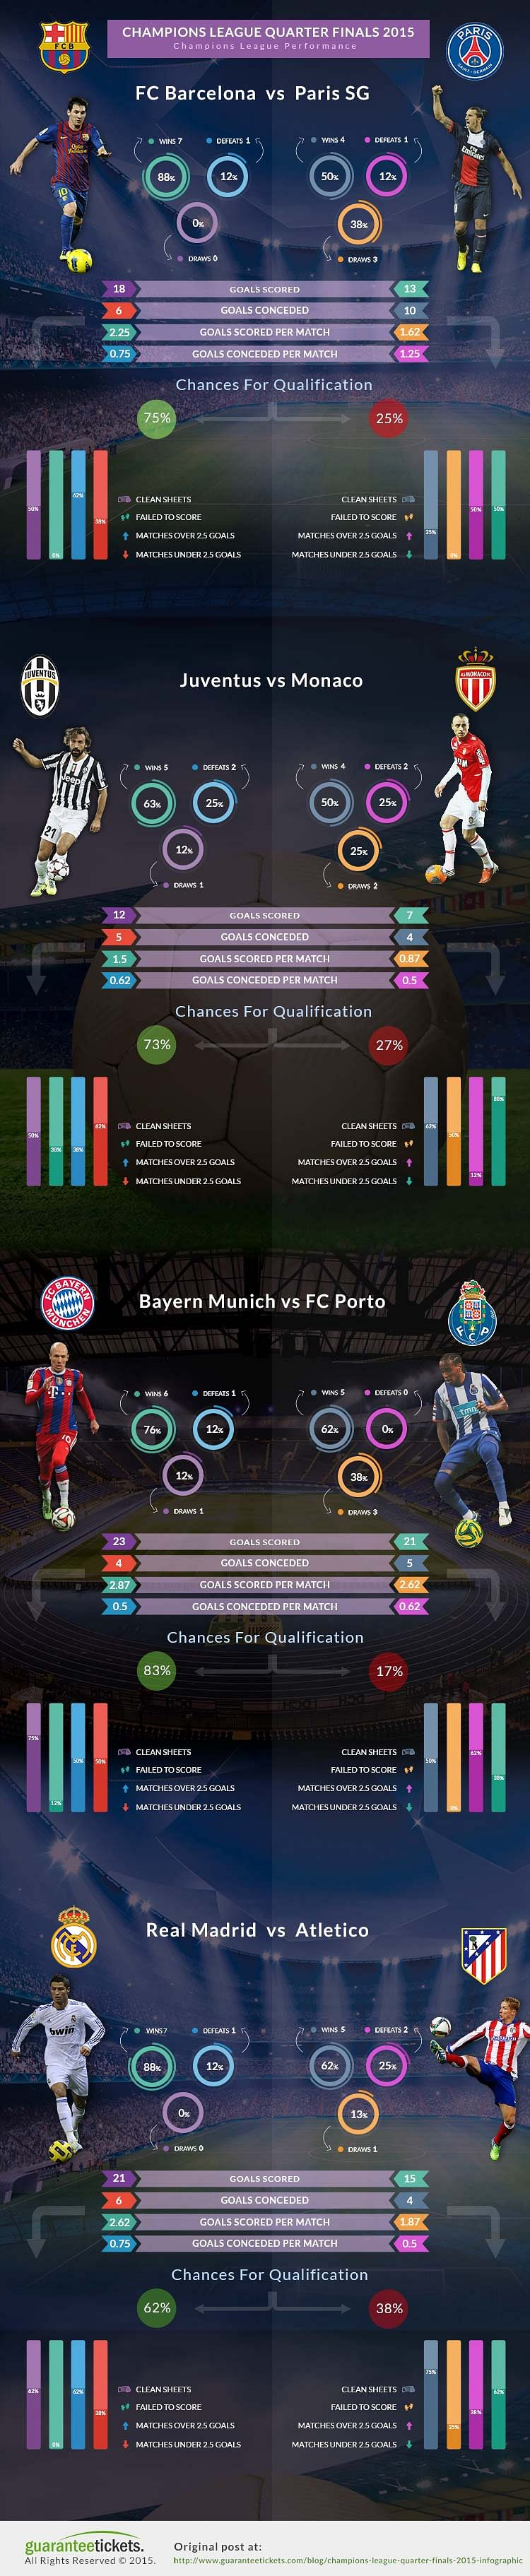 Infographic: Champions League quarter-final overview - Who will qualify for the semi-finals?